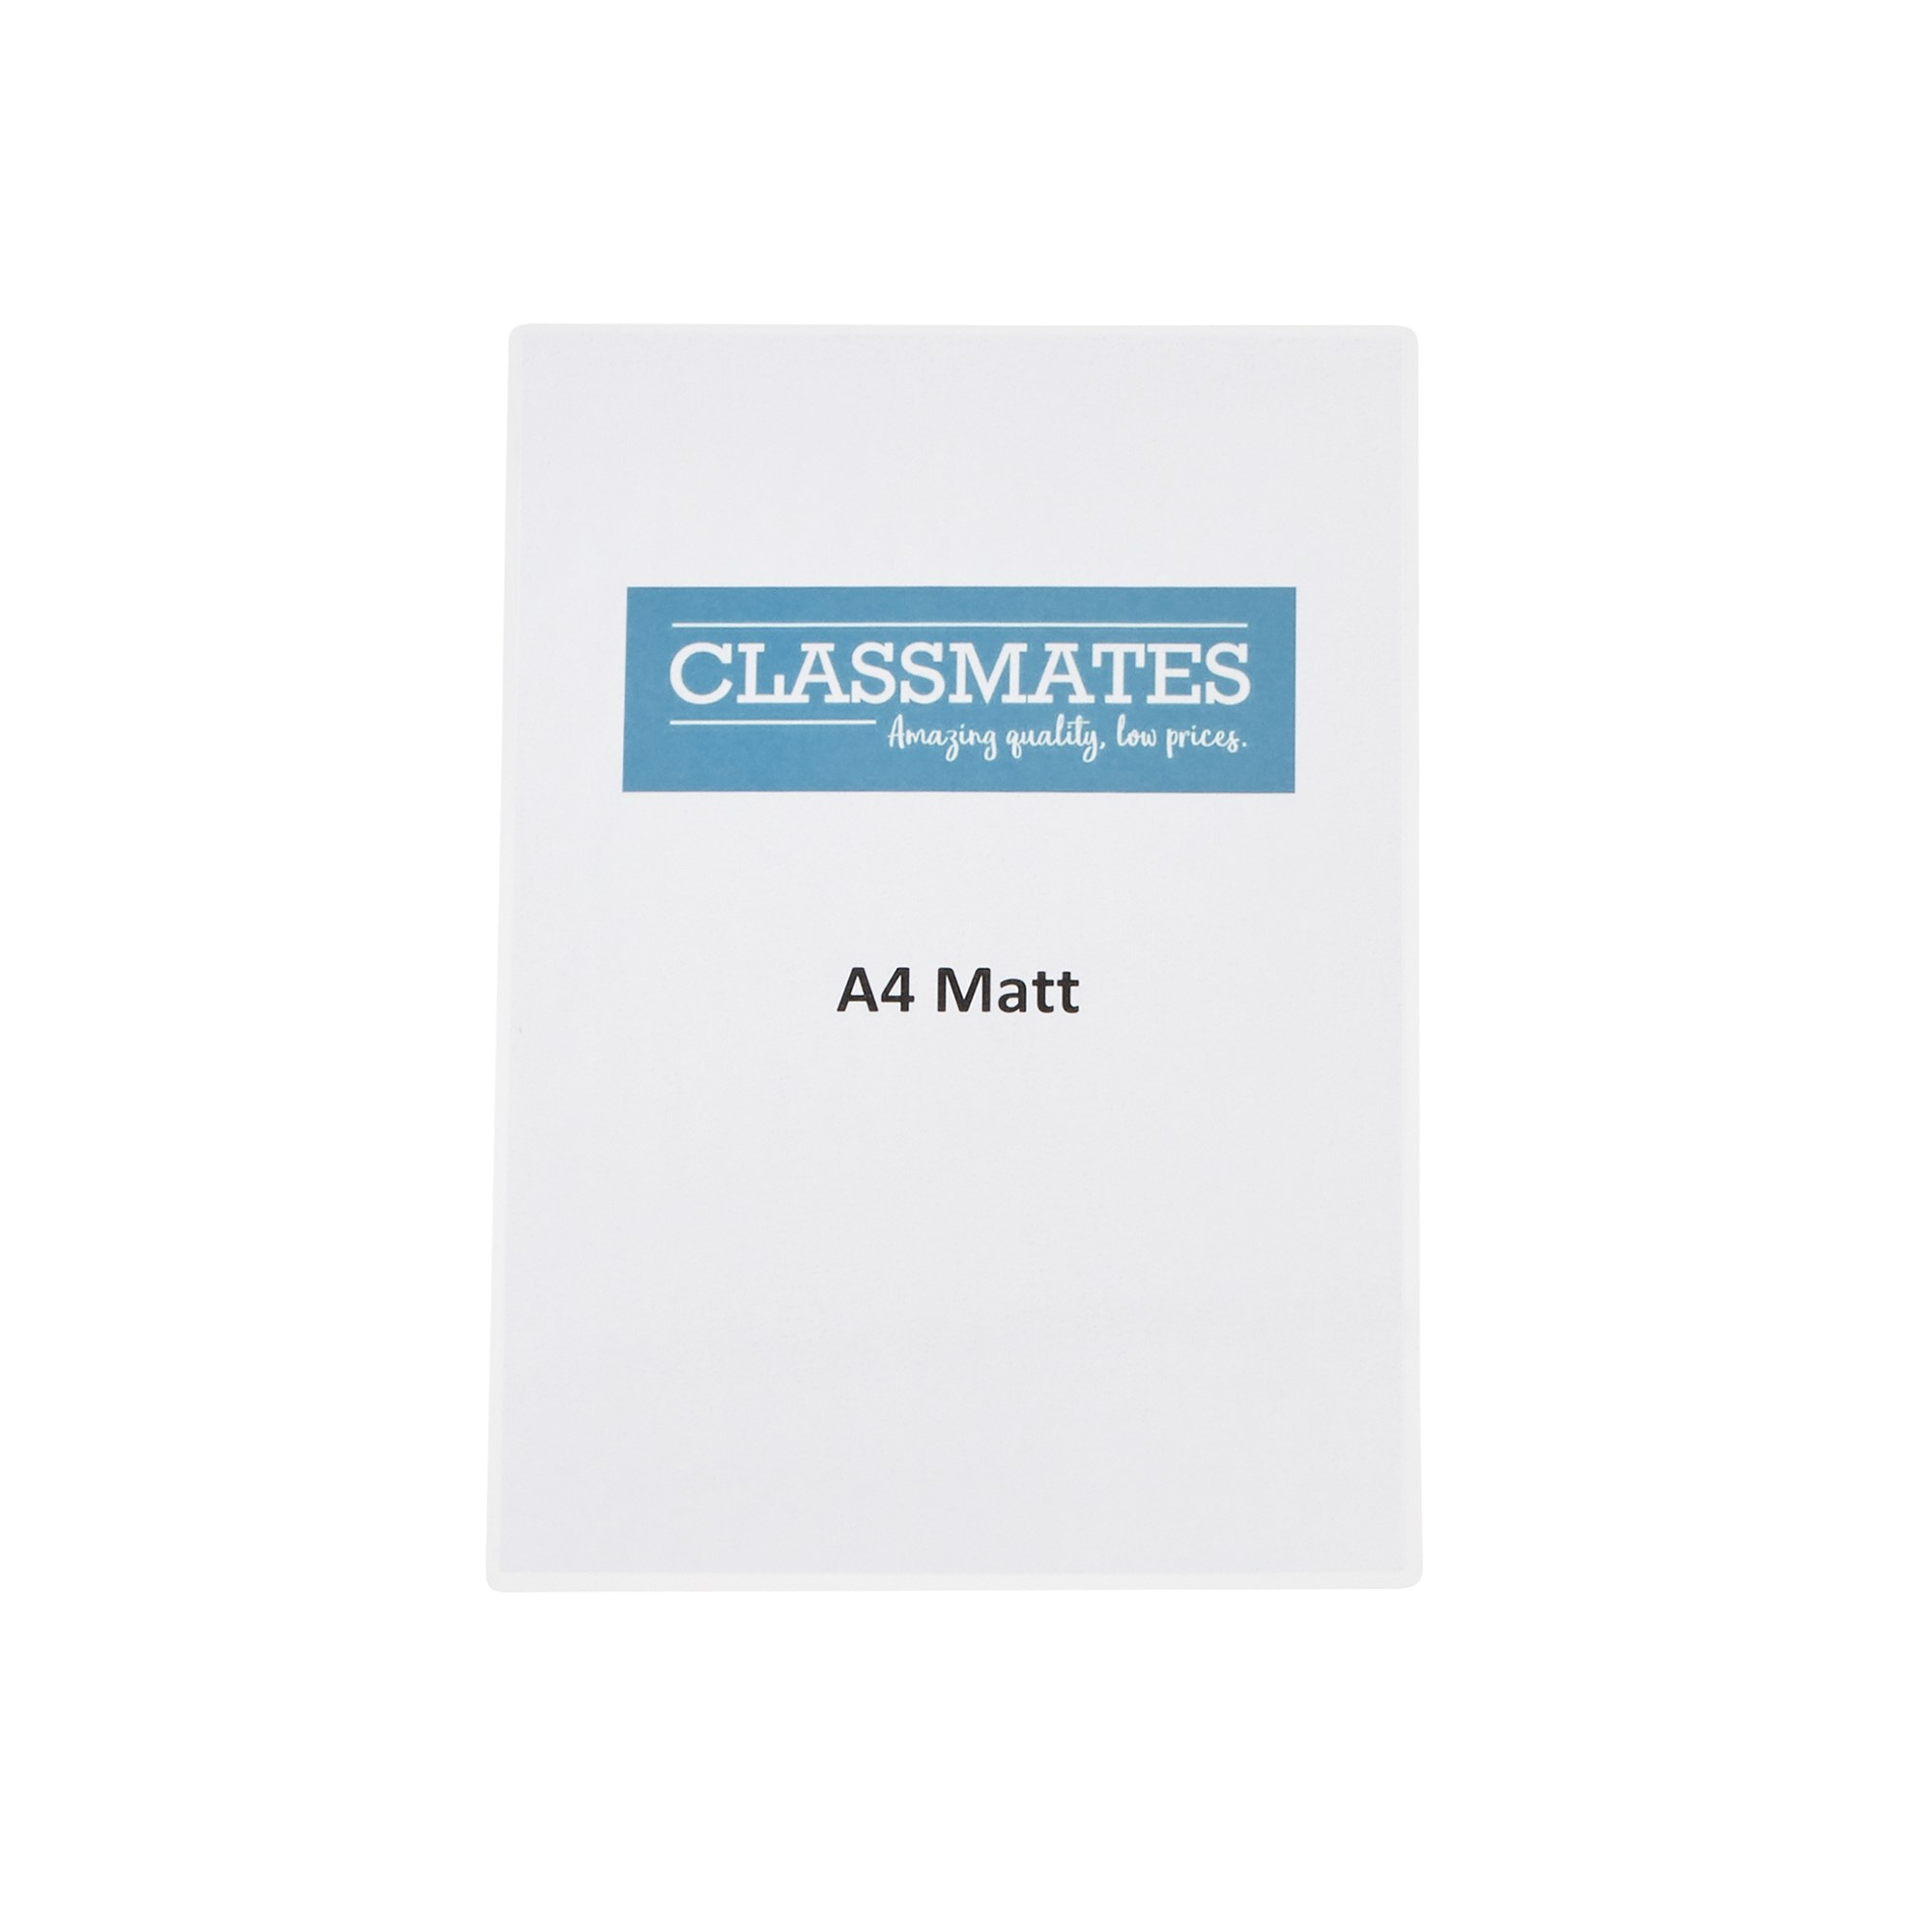 Classmates Laminating Pouches 250 Micron A3 Matt - Box of 100